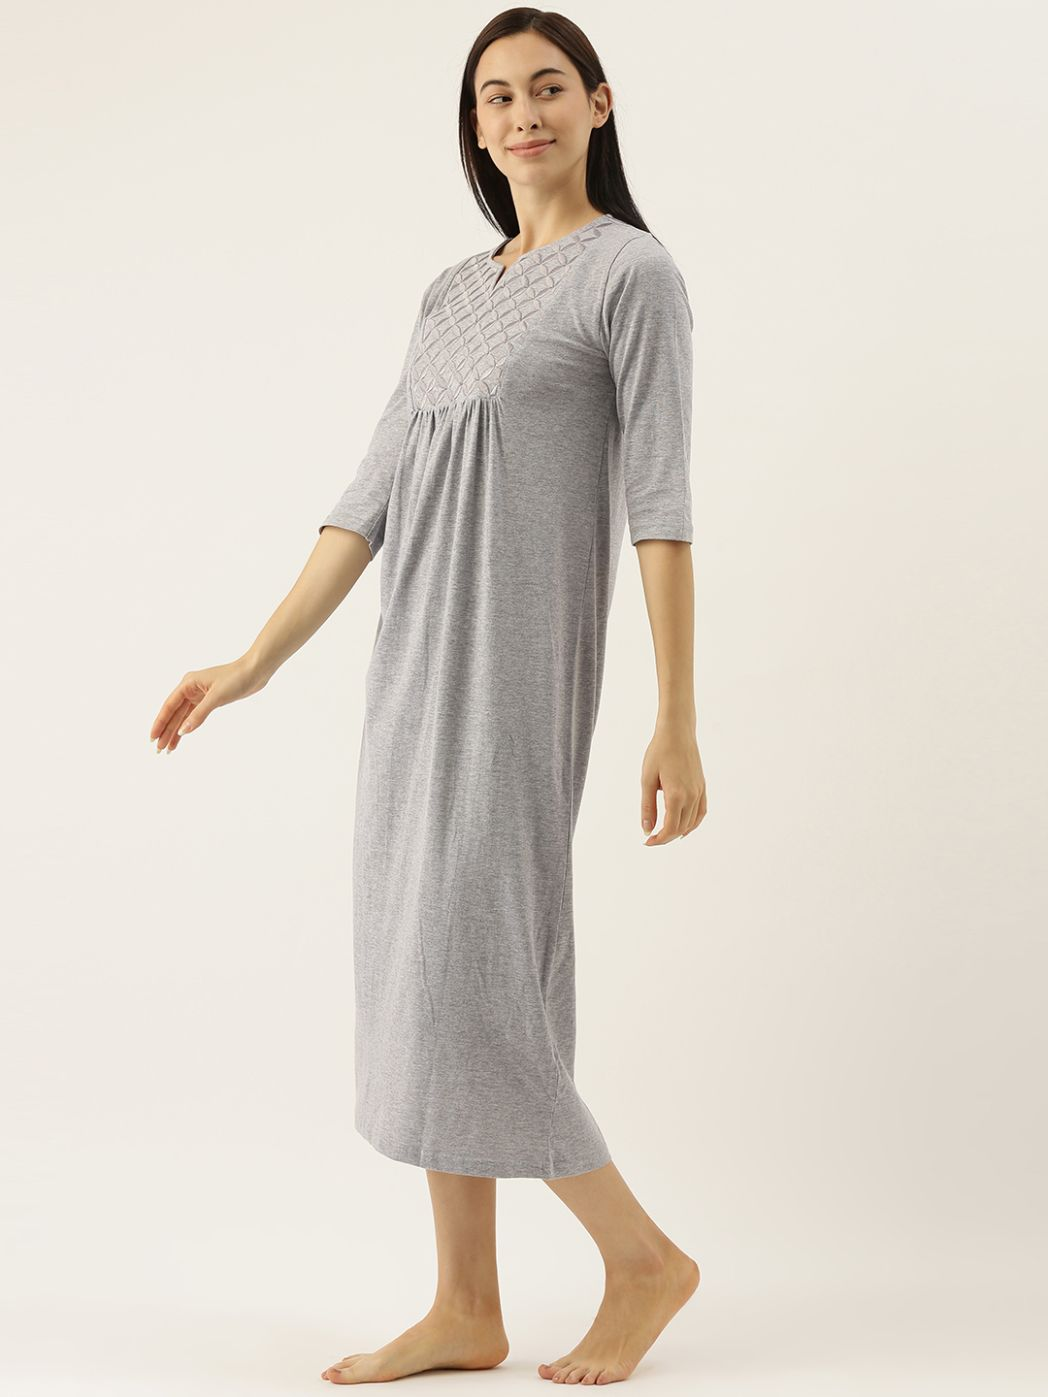 Grey Night Dress with Geometric Embroidery